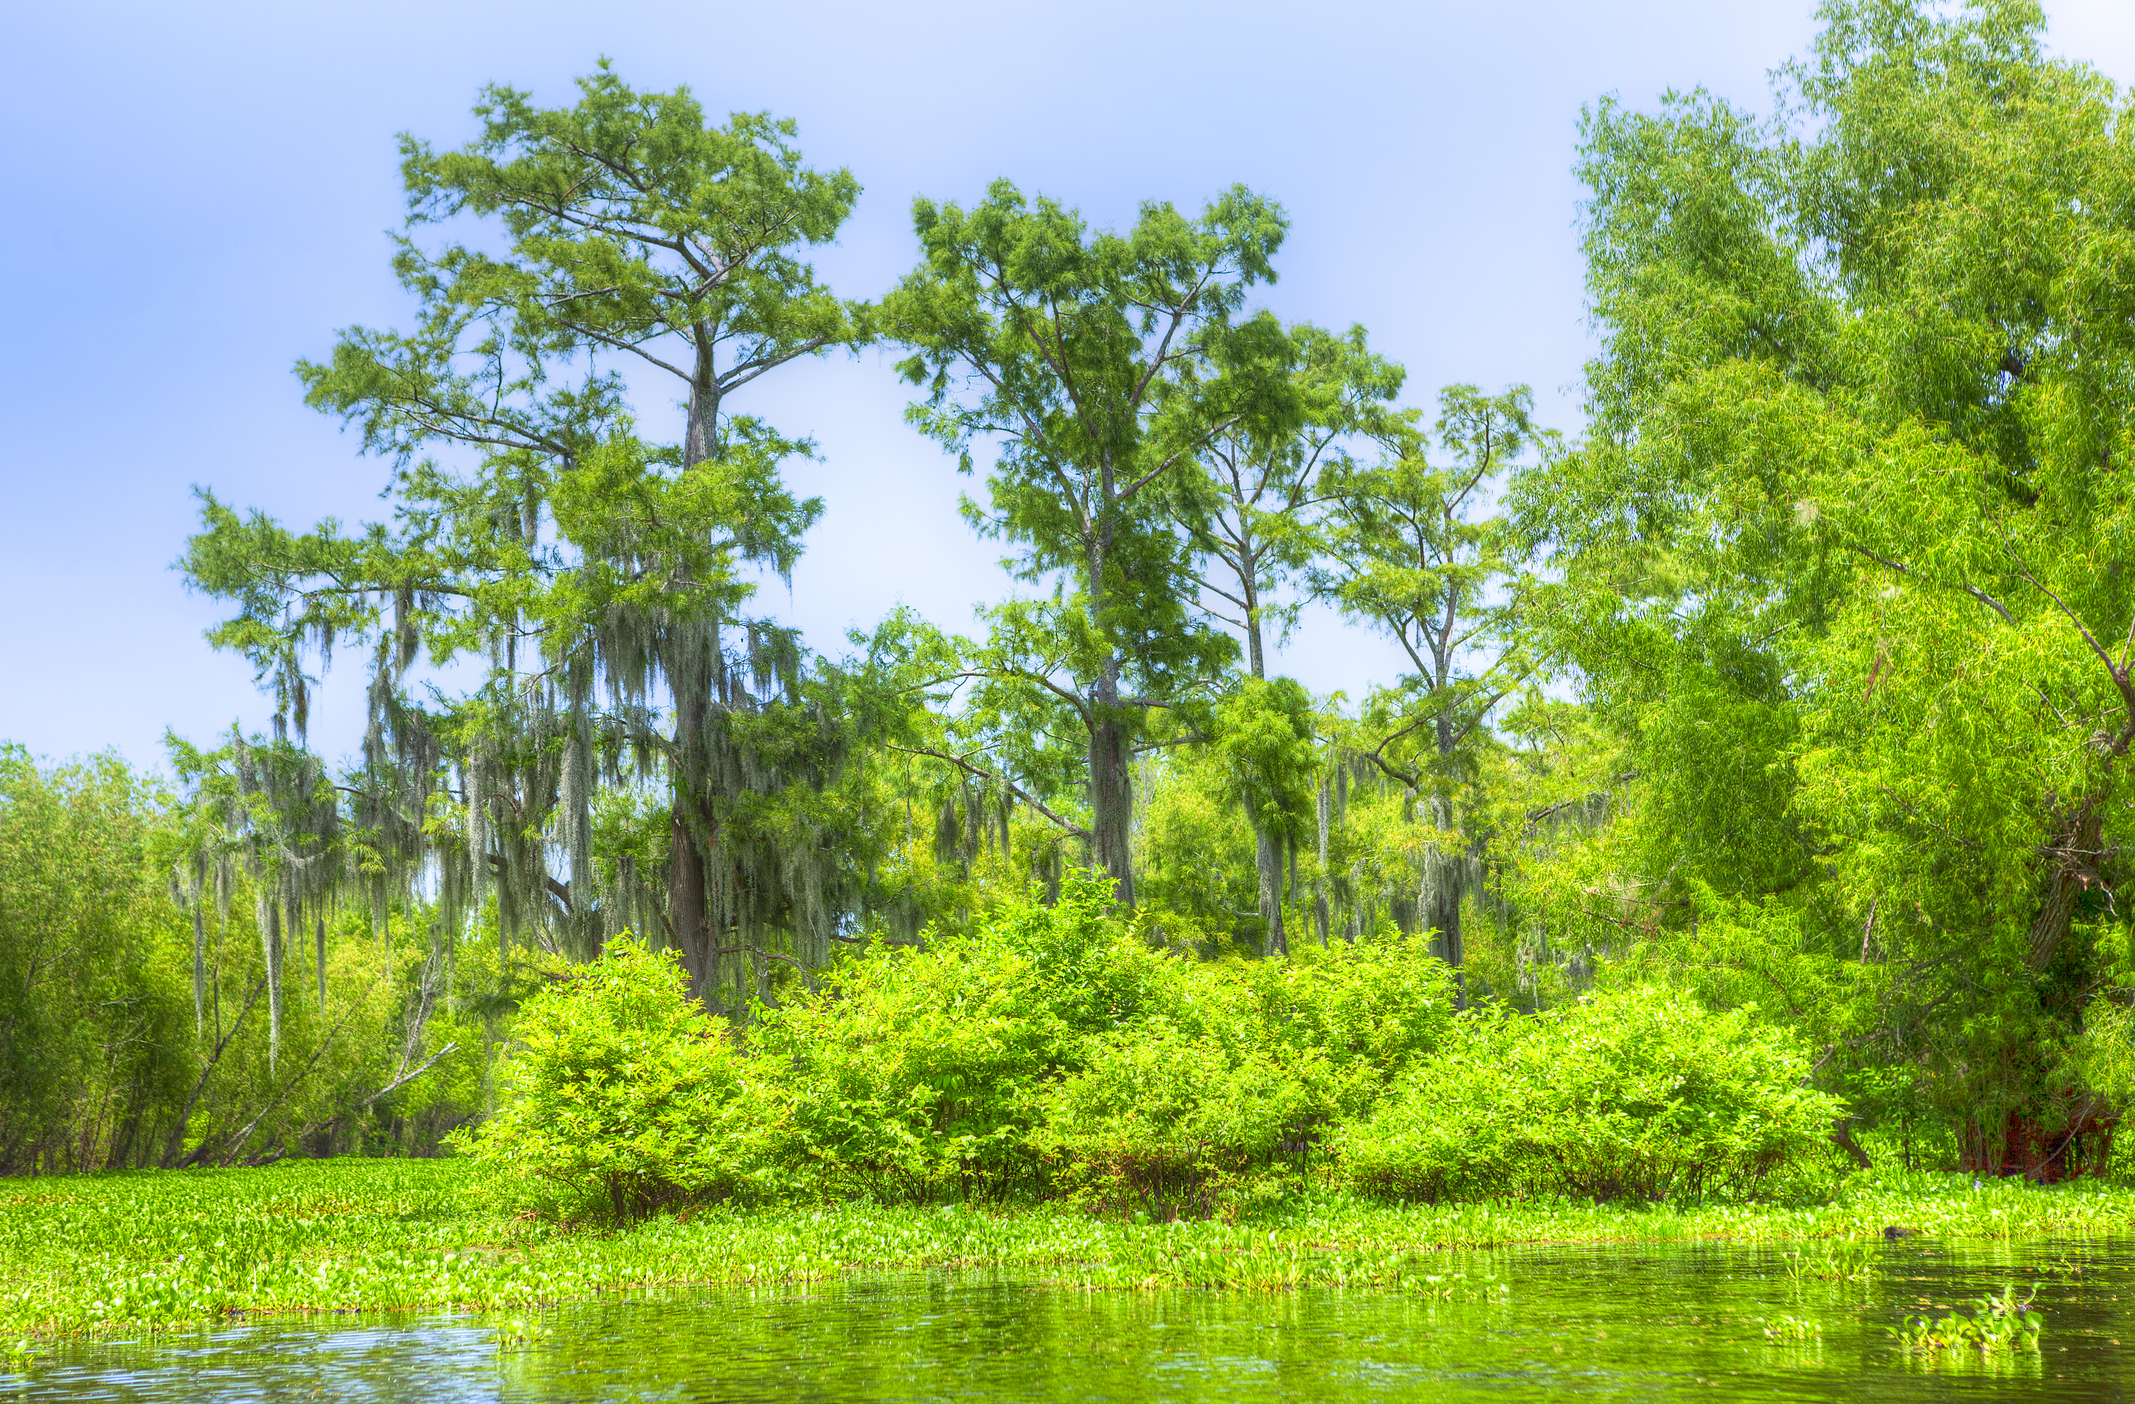 Swamp with vivid green trees